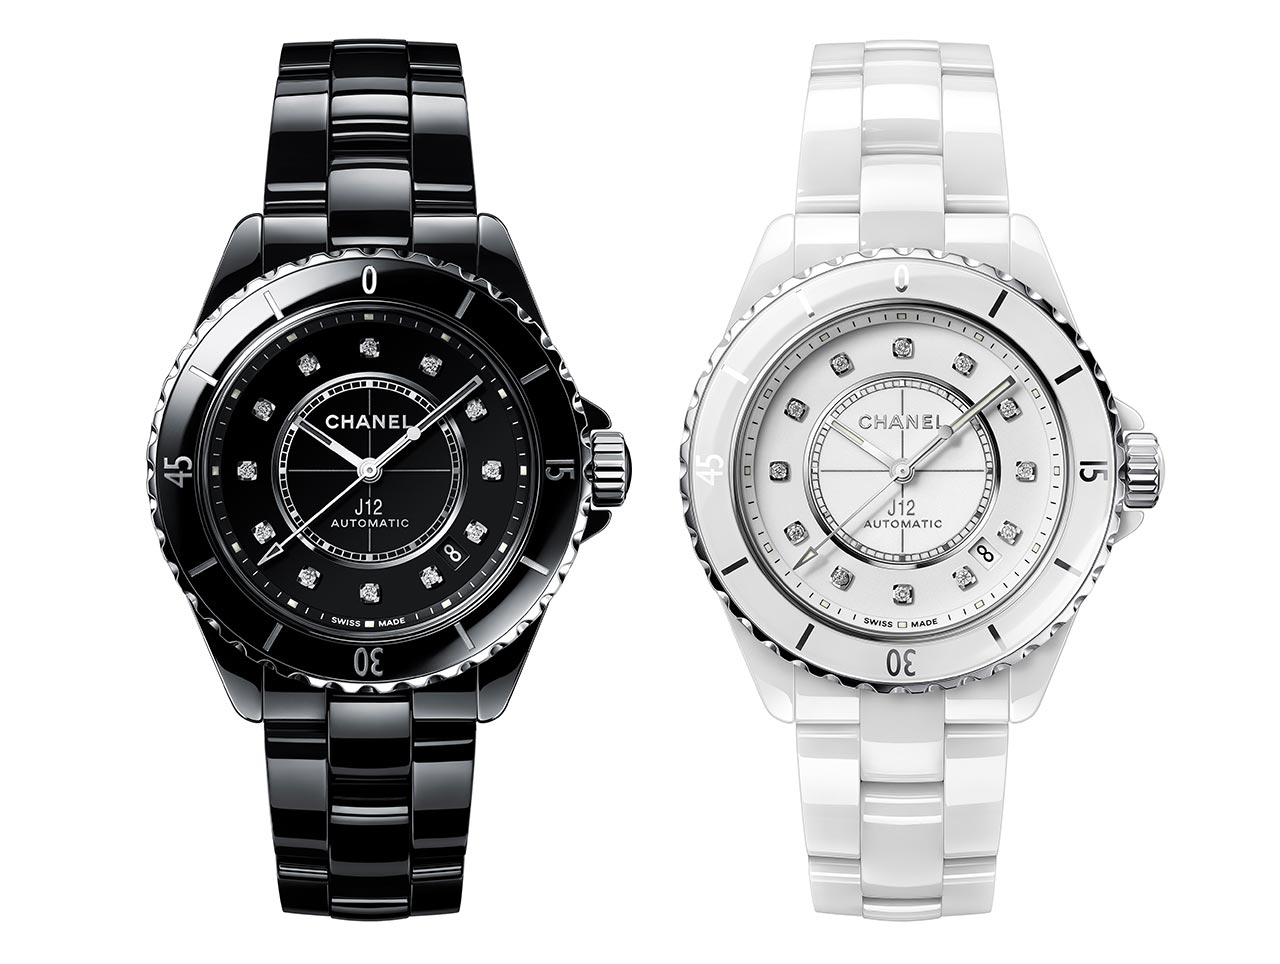 Chanel J12 Watch Time And Watches The Watch Blog